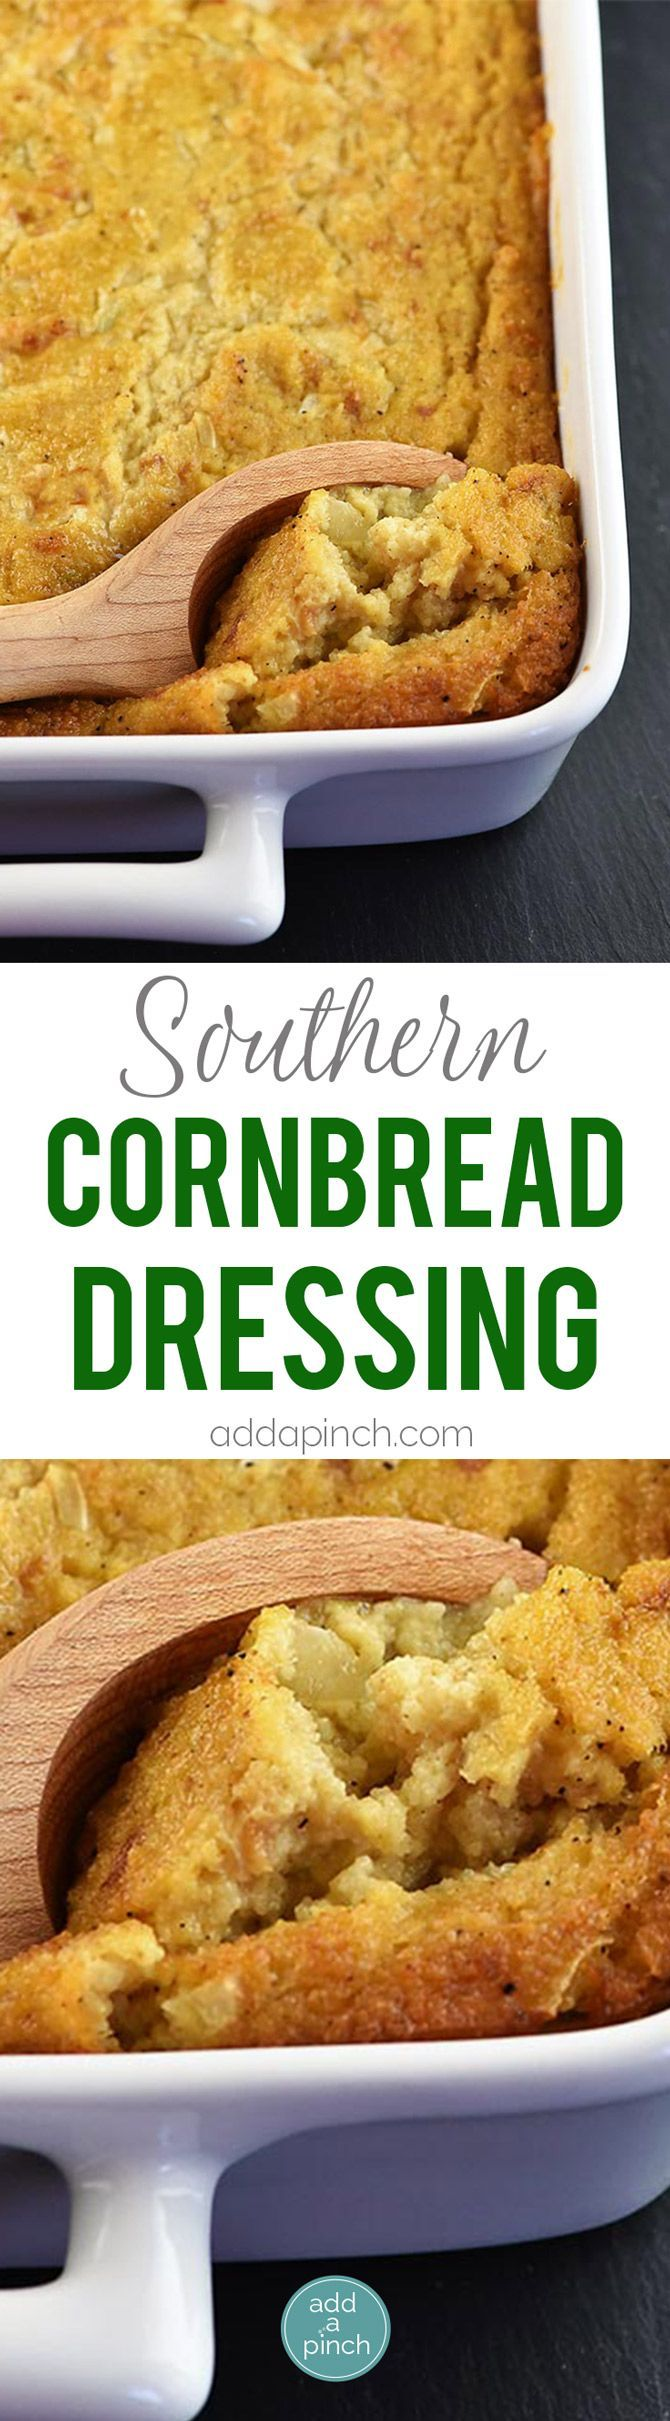 Southern Cornbread Dressing - Southern Cornbread Dressing makes a comforting, classic dish for the holidays! Moist and delicious, cornbread dressing makes the perfect side dish! // addapinch.com